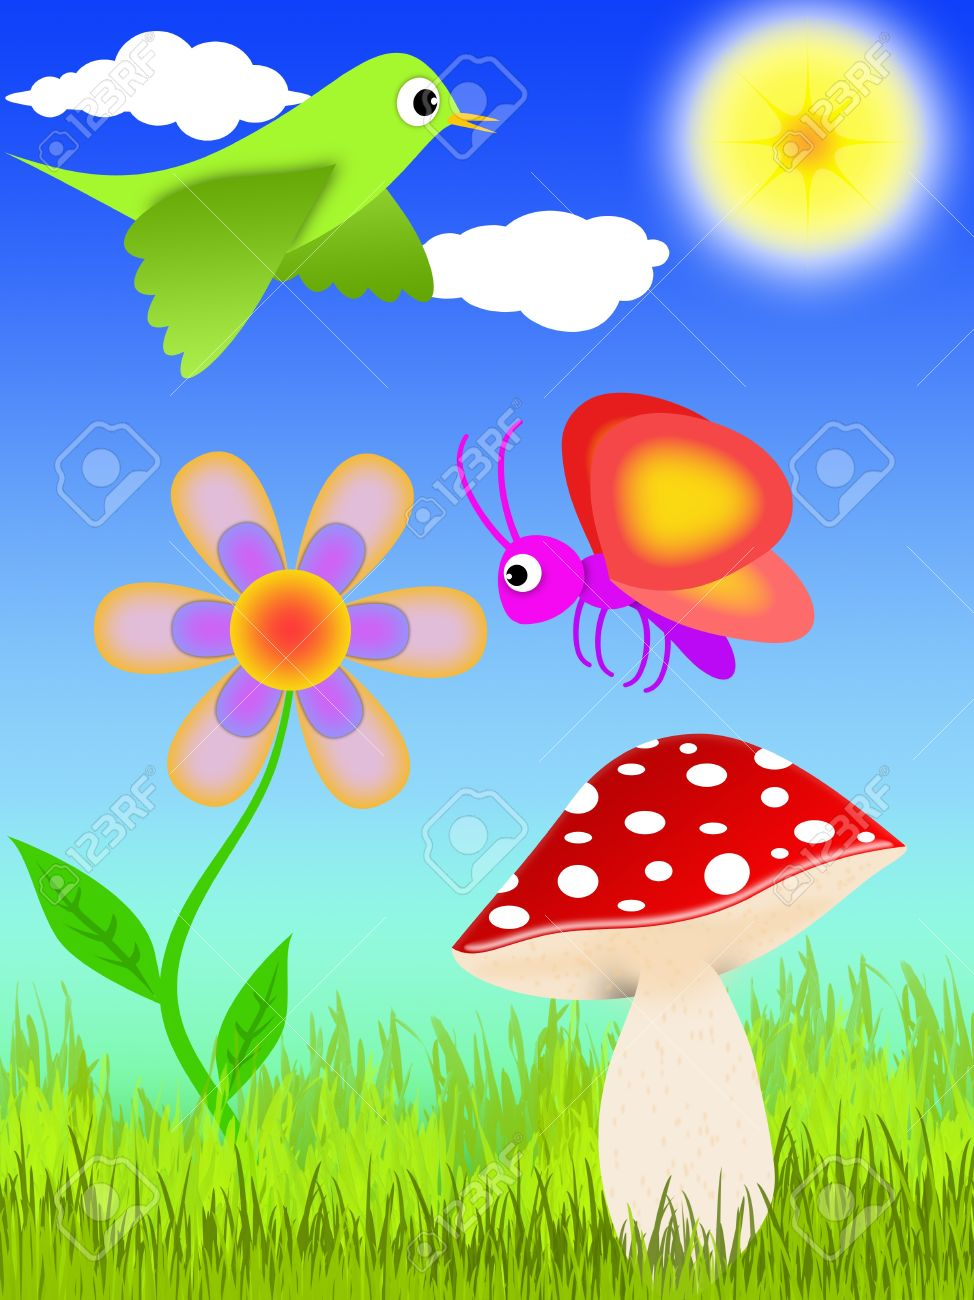 cartoon-style illustration of a lawn with mushroom, flower, bird and butterfly Stock Illustration - 9379253